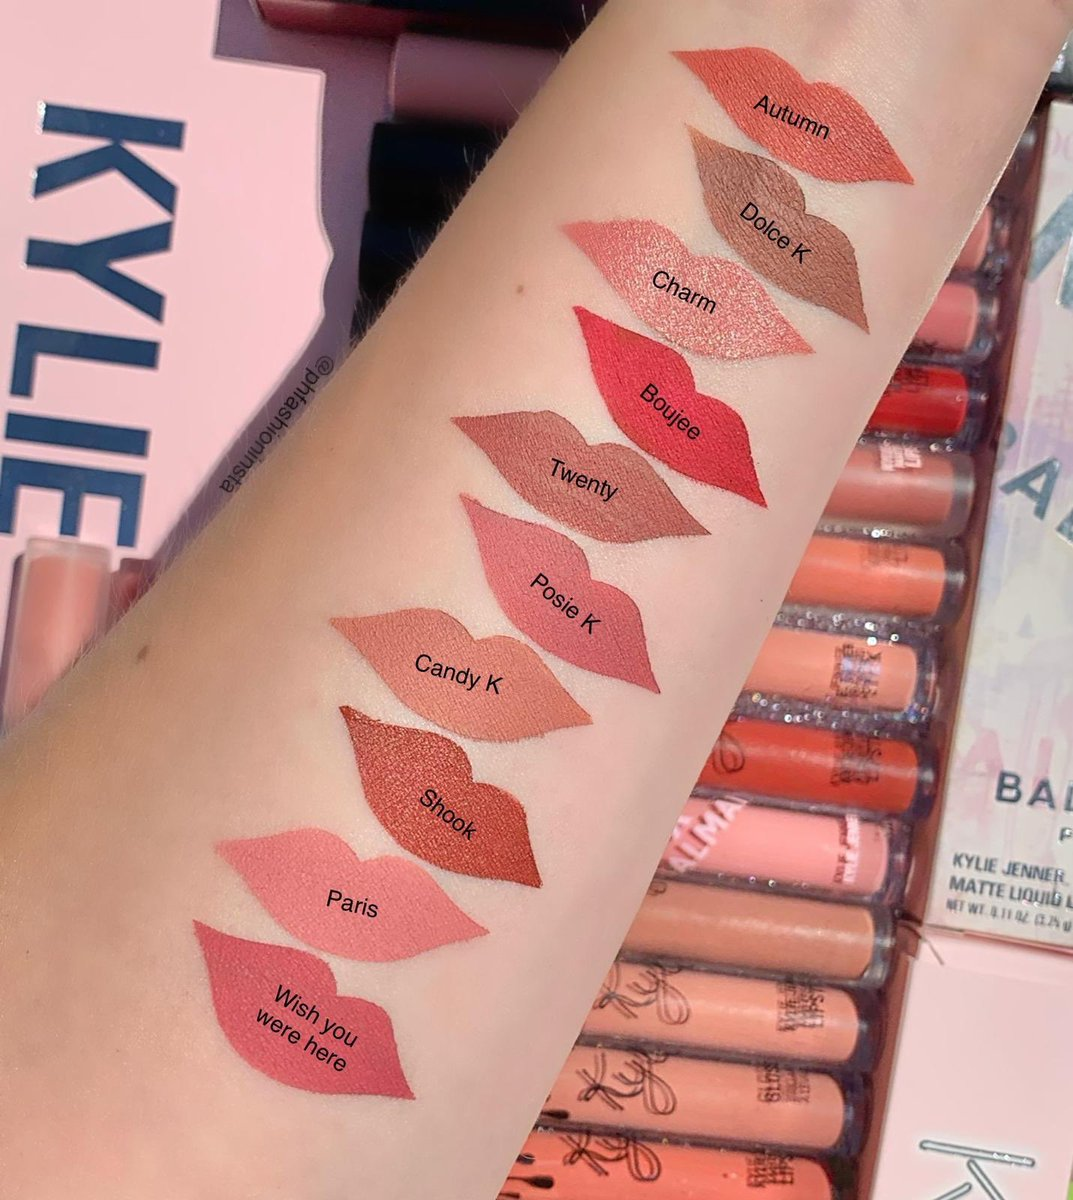 Some of my favourites #kylie #kyliecosmetics #nudelipcolor #makeuplove #nudemakeup #kyliejenner #flatlaylove #makeupphotography #slave2makeup #eyeshadowpalette #makeuppage #makeupjunkie #makeupfanatic #kyliejennerlipkit #mykyliecosmetics #kyliecosmetic #kylieskin #followmepic.twitter.com/P1dk61hsUJ